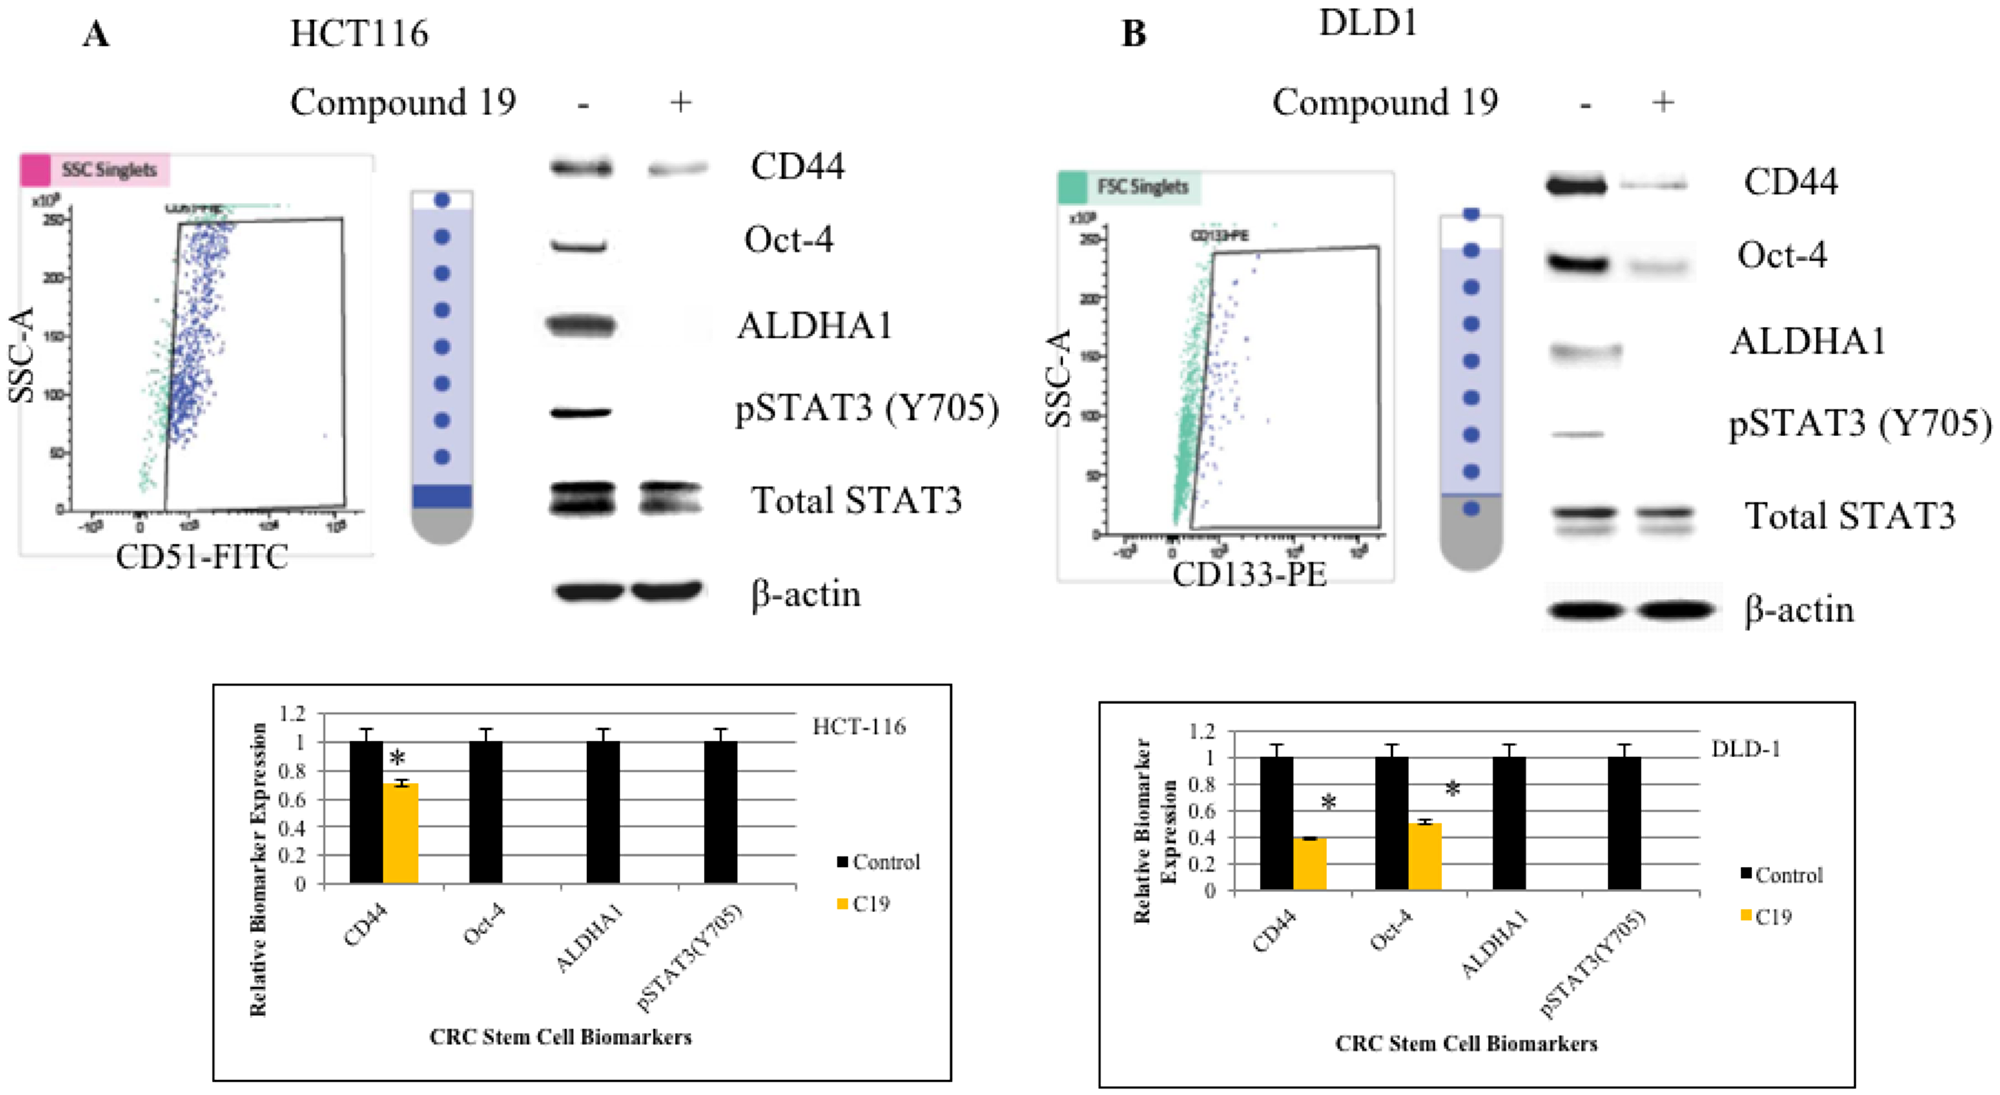 FACS cell sorting of HCT116 and DLD1 and western analyses of cancer stem cell biomarkers.